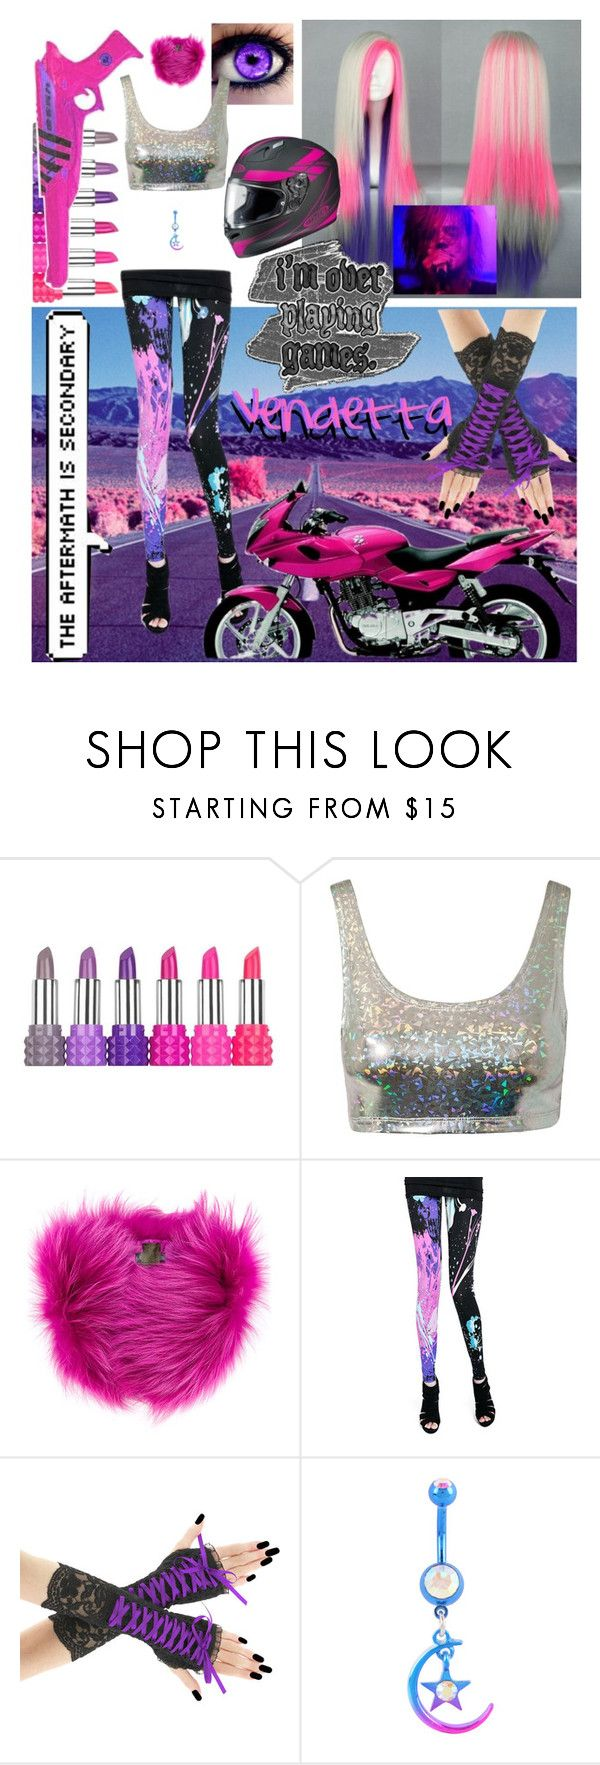 """""""Vendetta"""" by oceanforthestars ❤ liked on Polyvore featuring Kat Von D, COS, Estradeur, Mr & Mrs Italy and Hot Topic"""